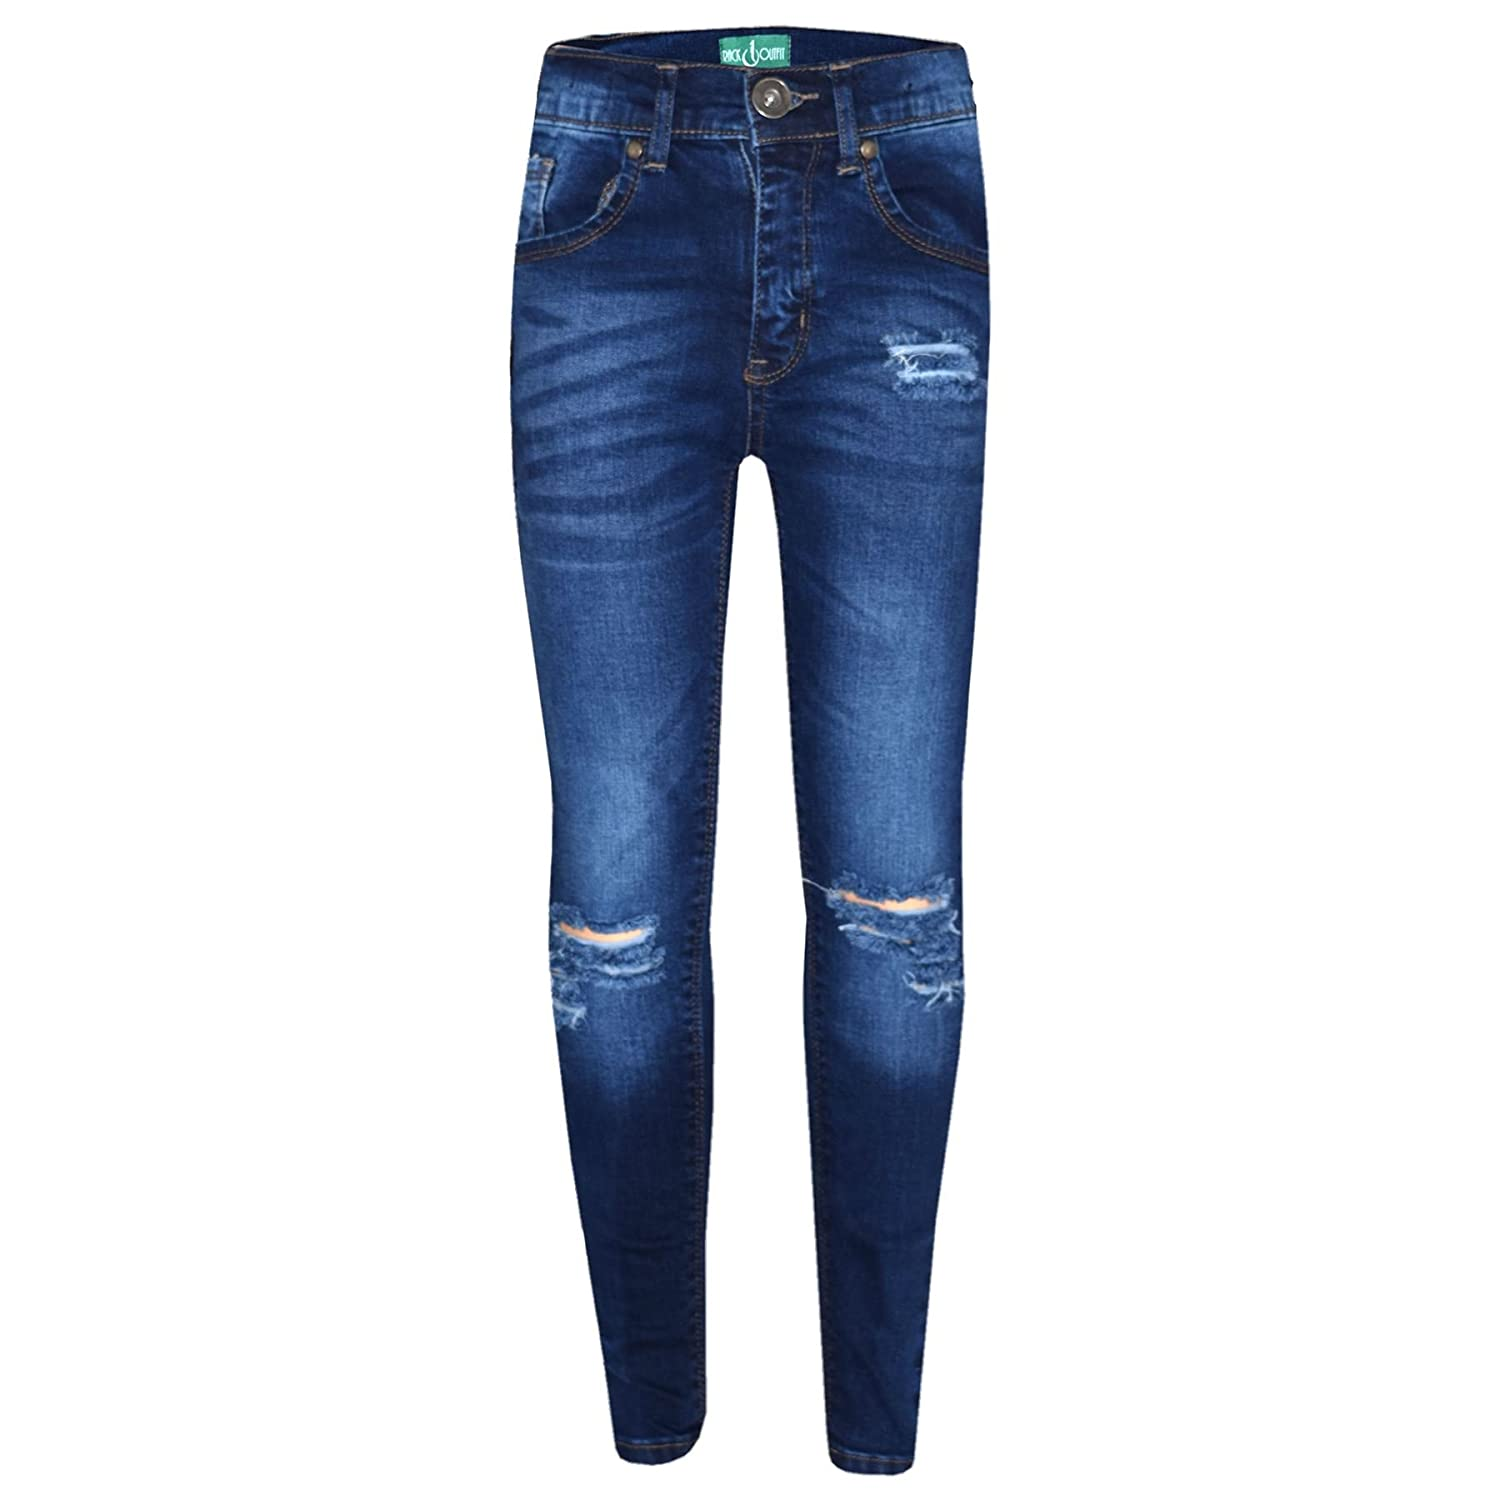 A2Z 4 Kids® Girls Stretchy Jeans Kids Blue Denim Ripped Pants Fashion Frayed Trousers Jeggings Age 5 6 7 8 9 10 11 12 13 Years